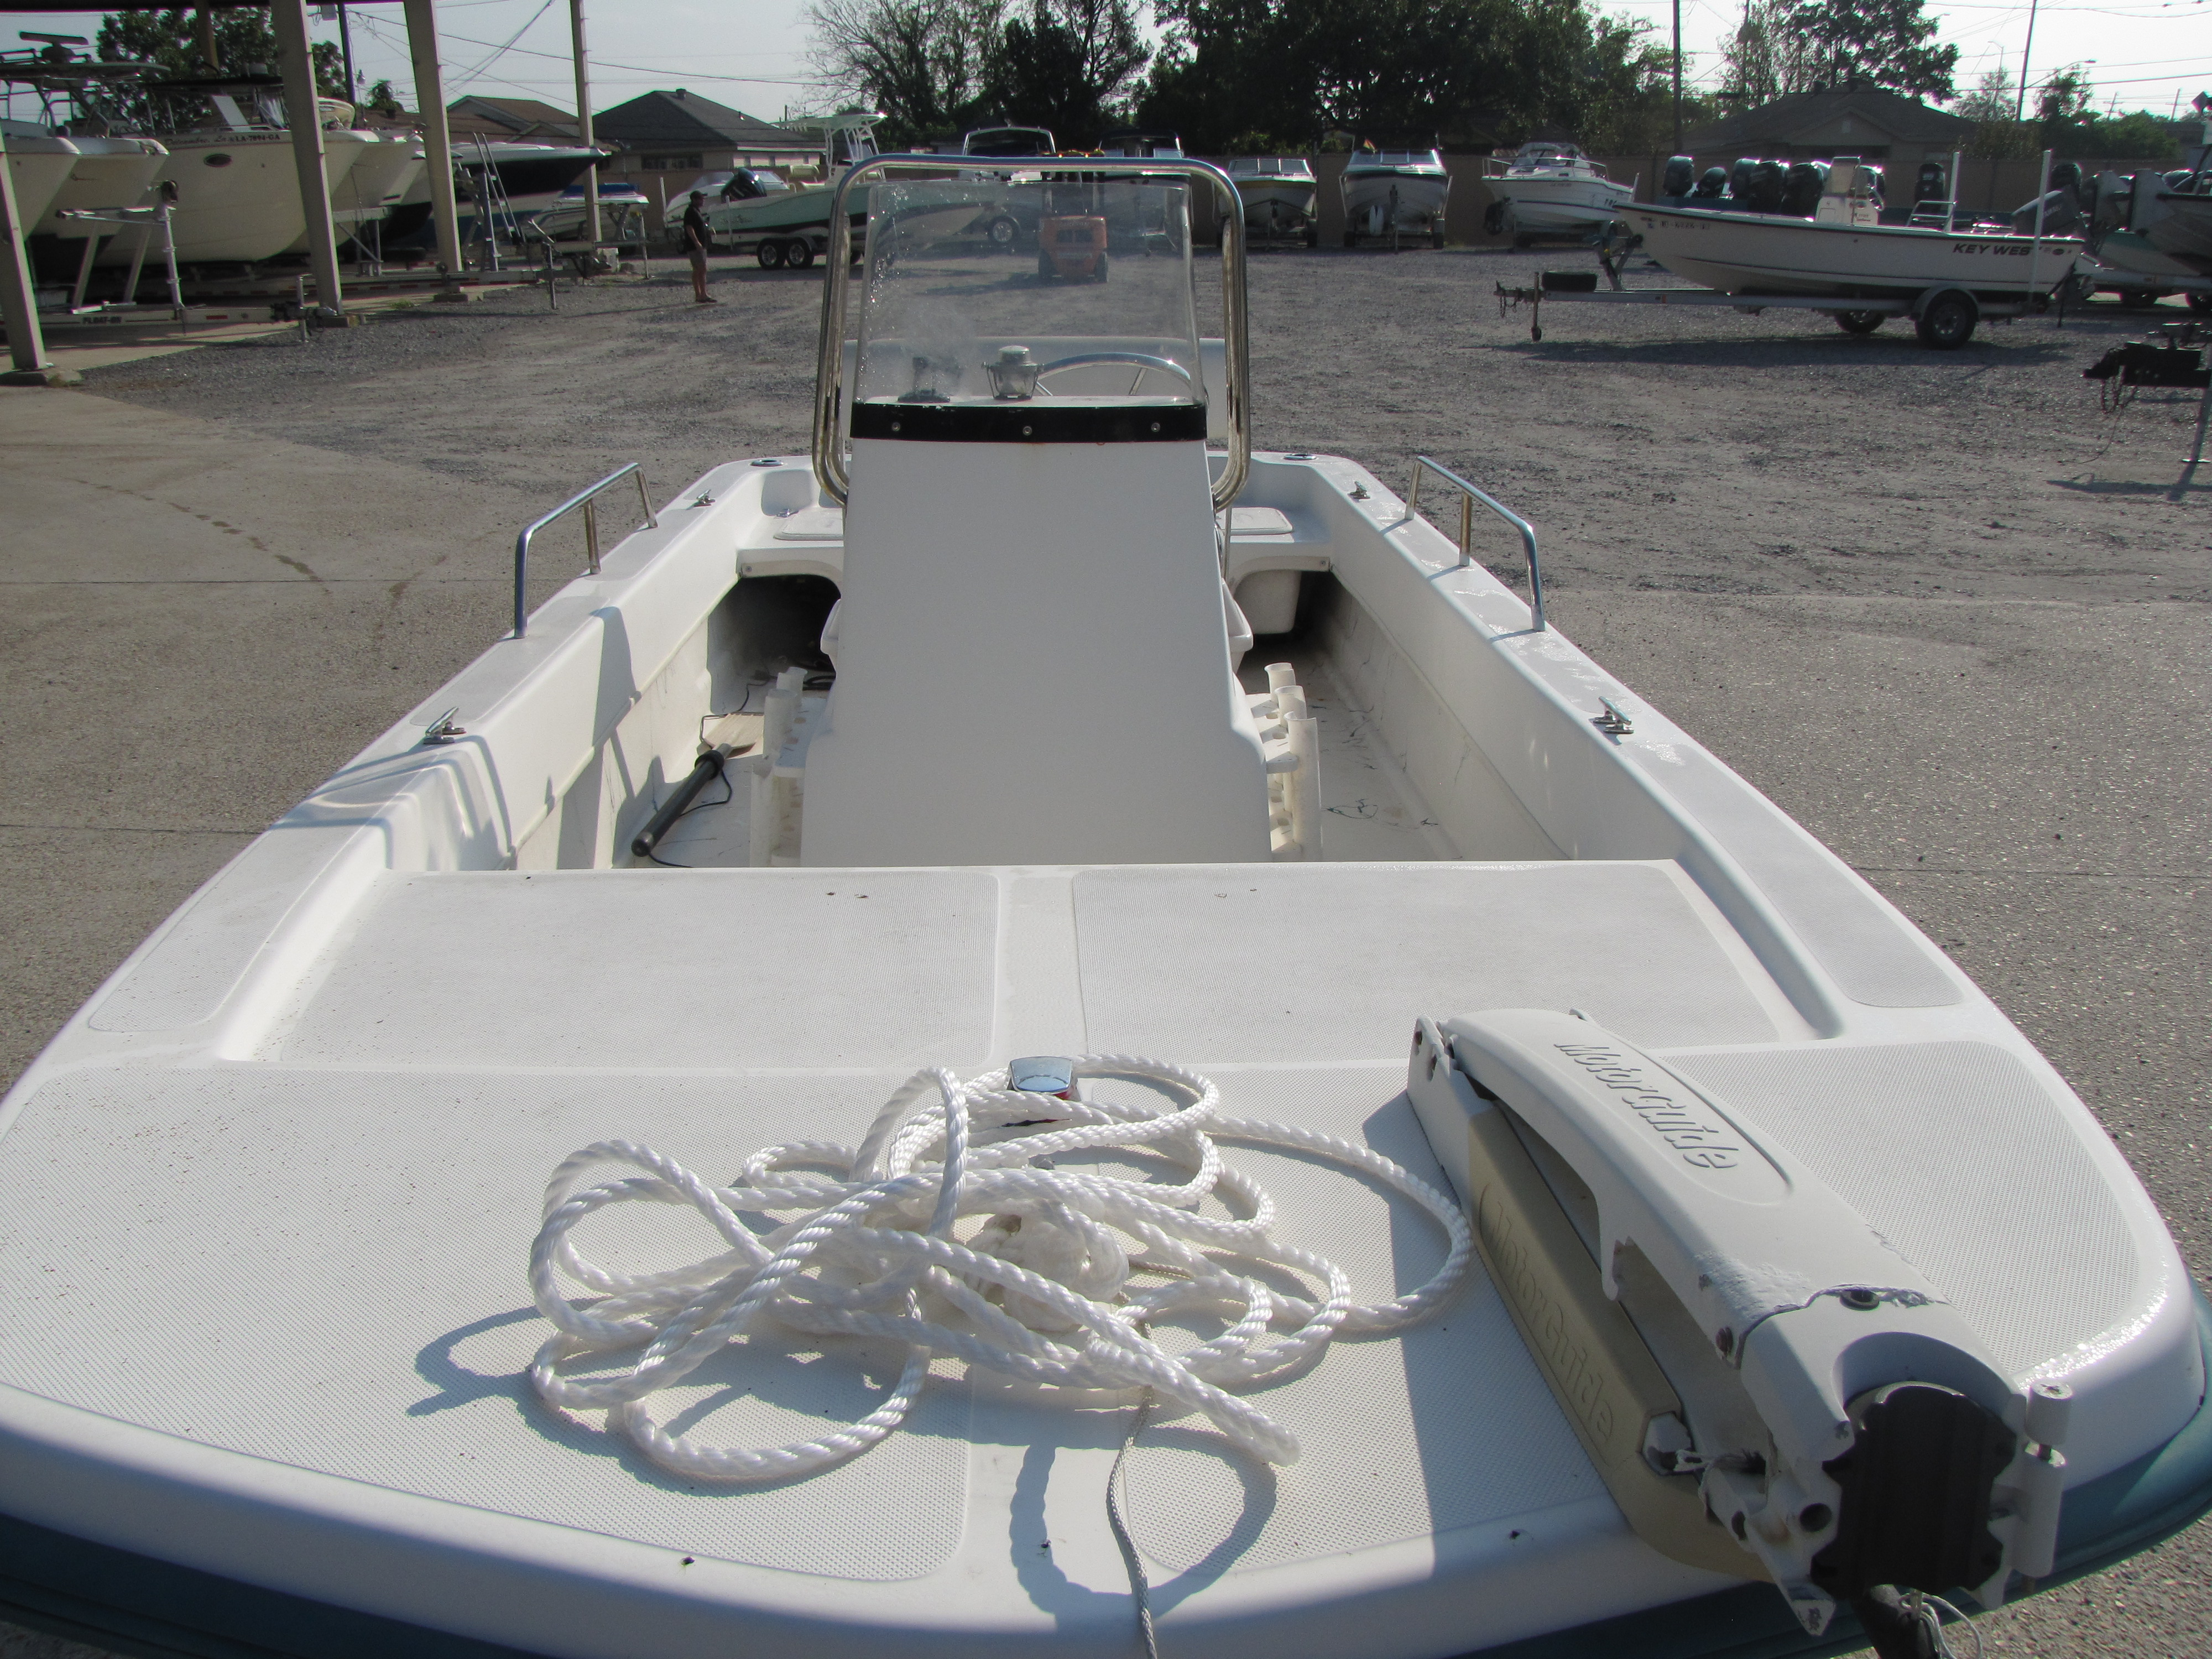 2009 Sundance boat for sale, model of the boat is 17 cc & Image # 13 of 15